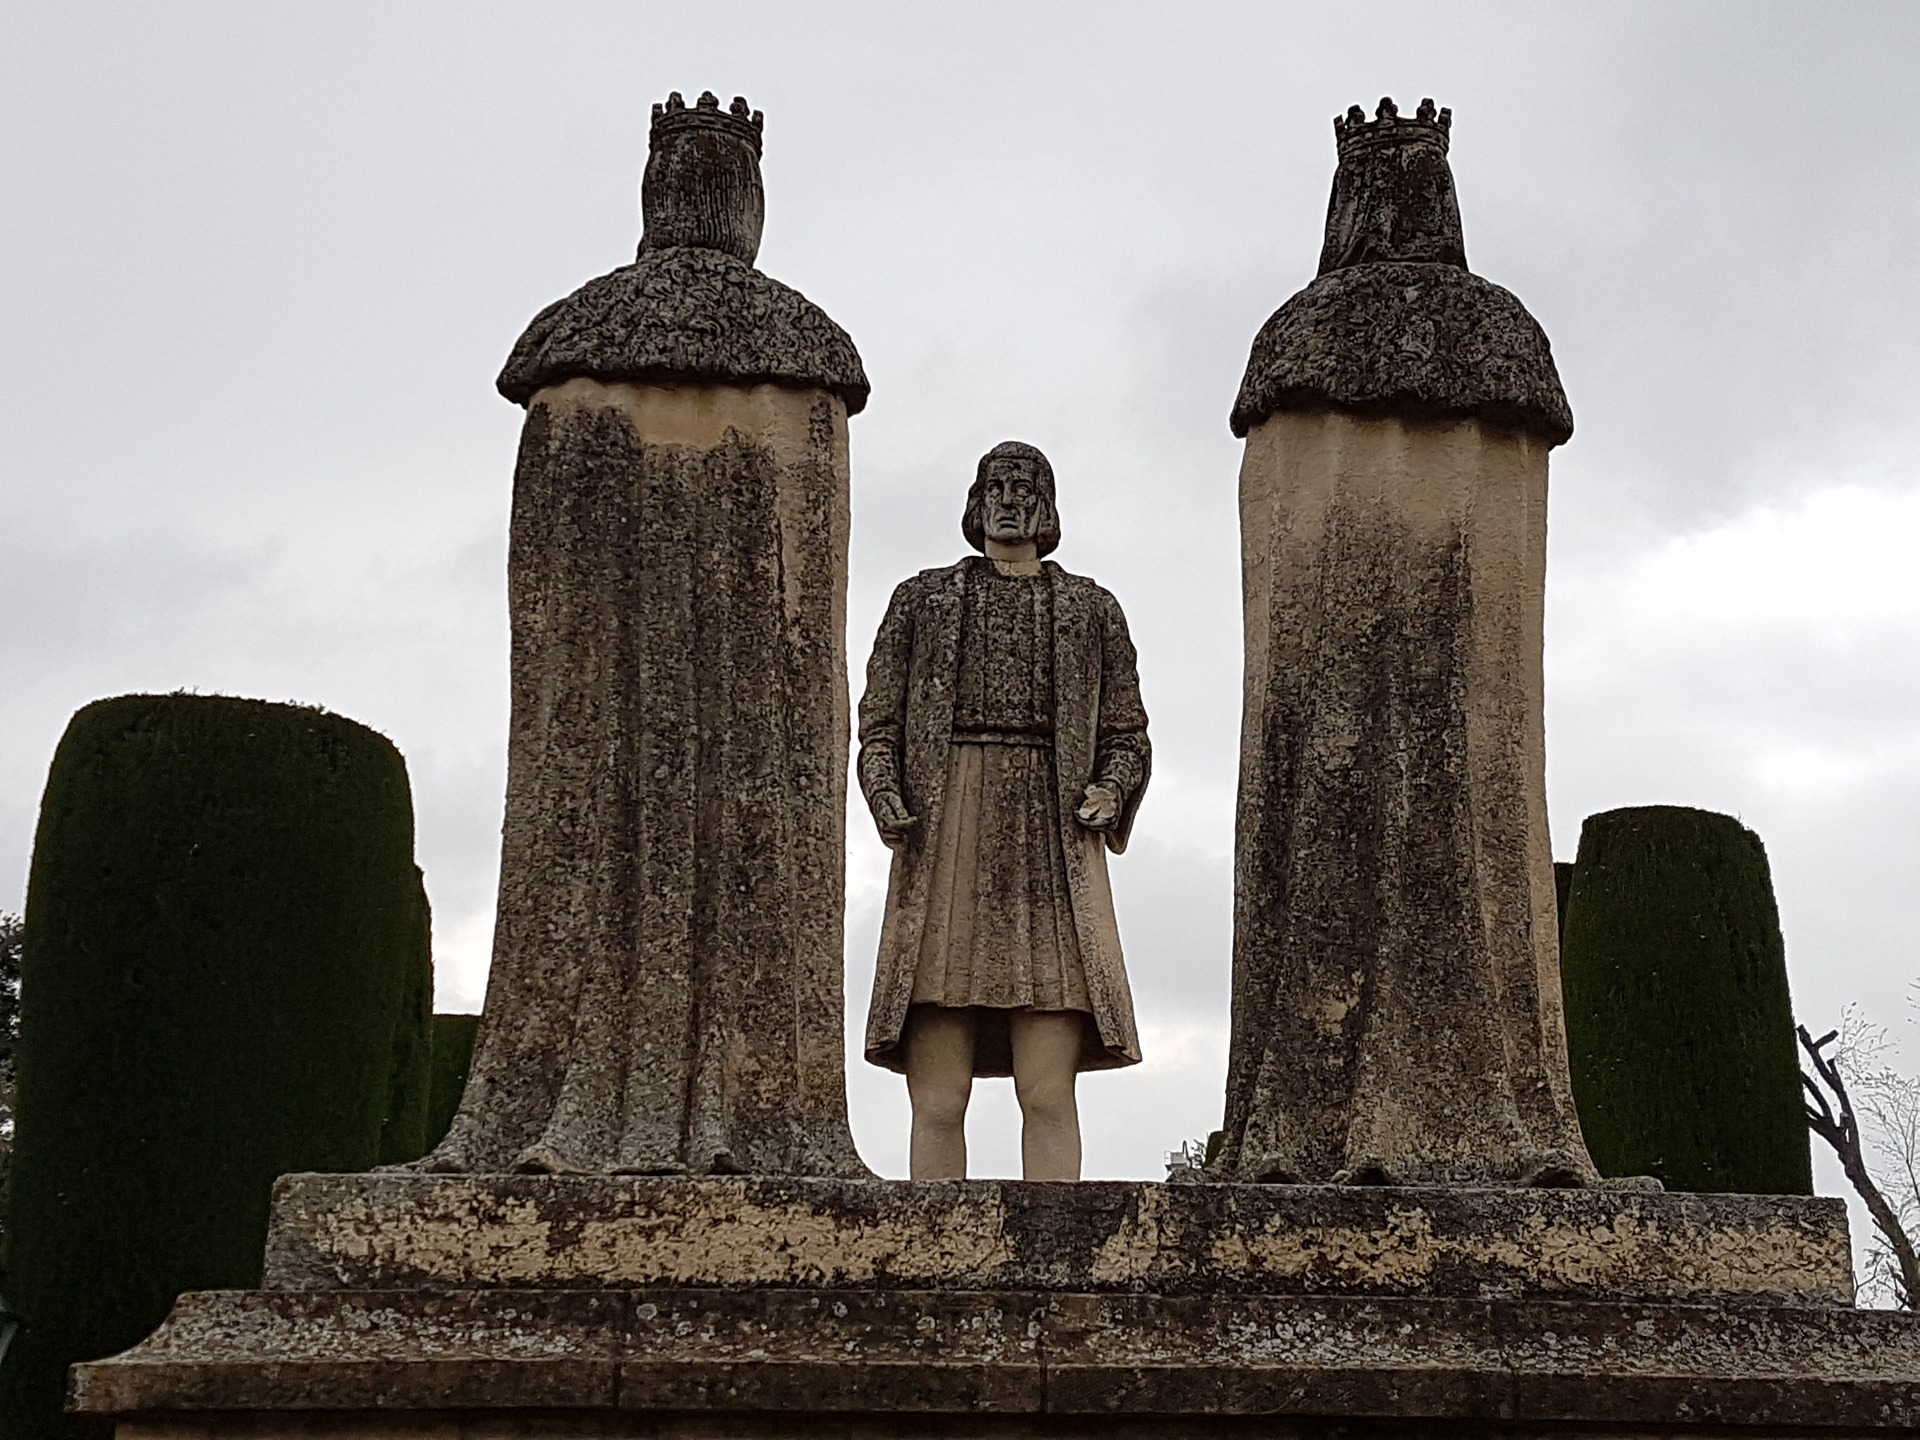 Statue of Christopher Columbus between the Catholic Monarchs Isabel I and Fernando II.